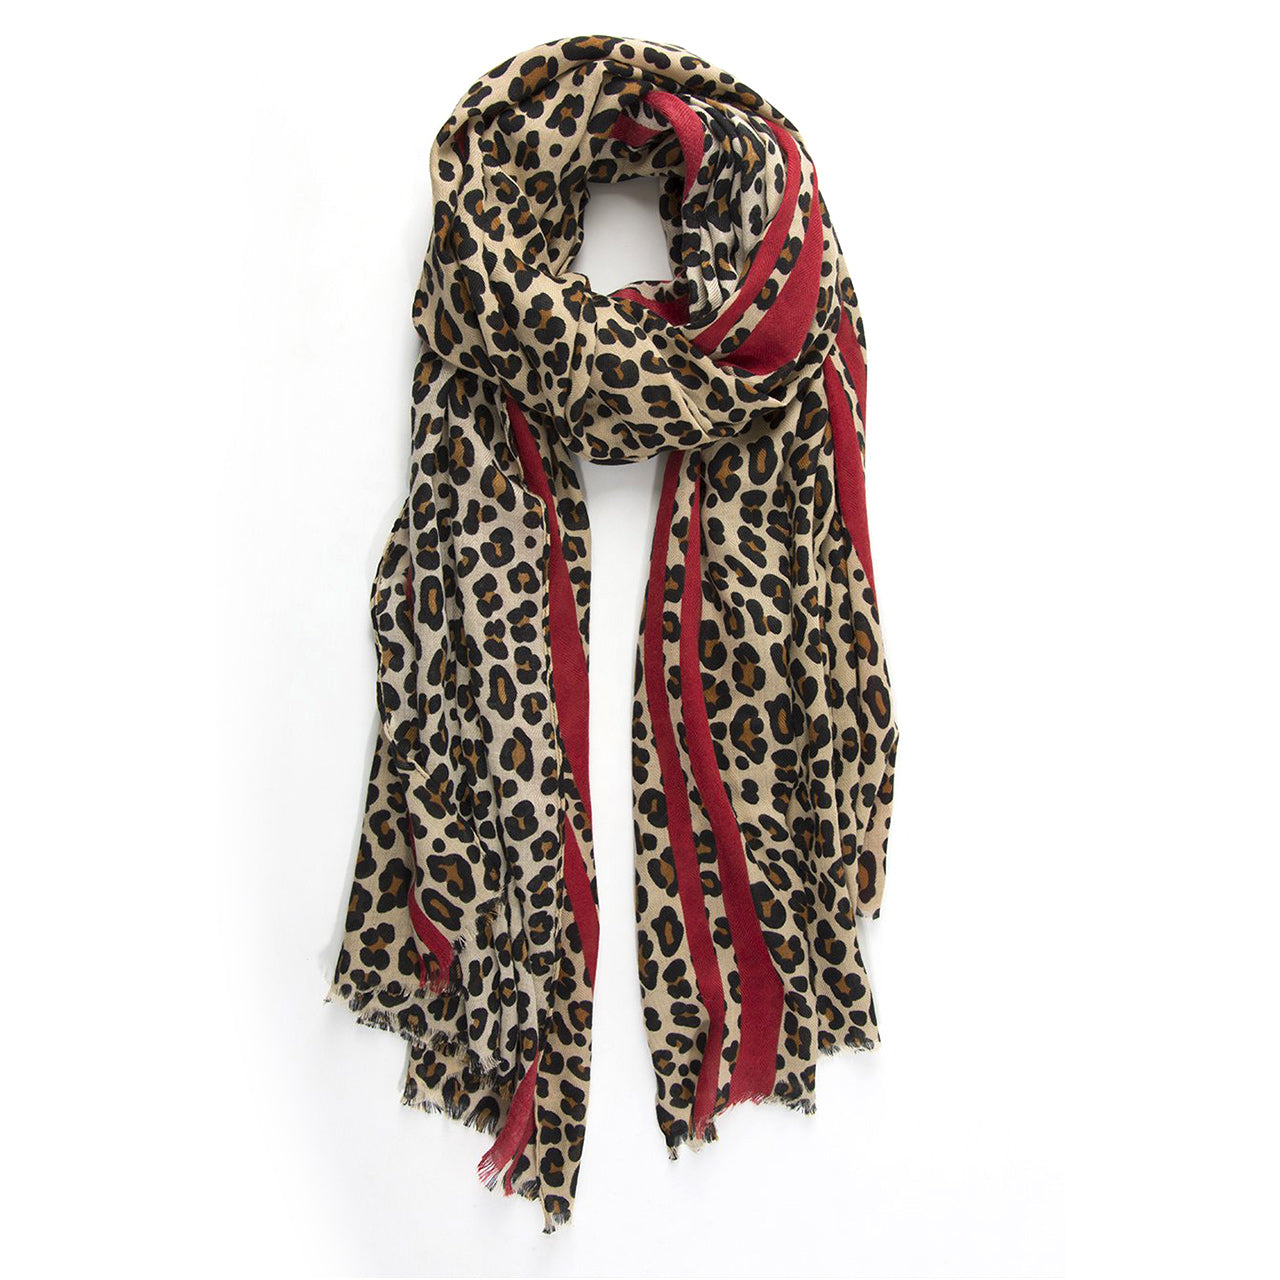 Leopard Print Scarf – Natural with red stripe